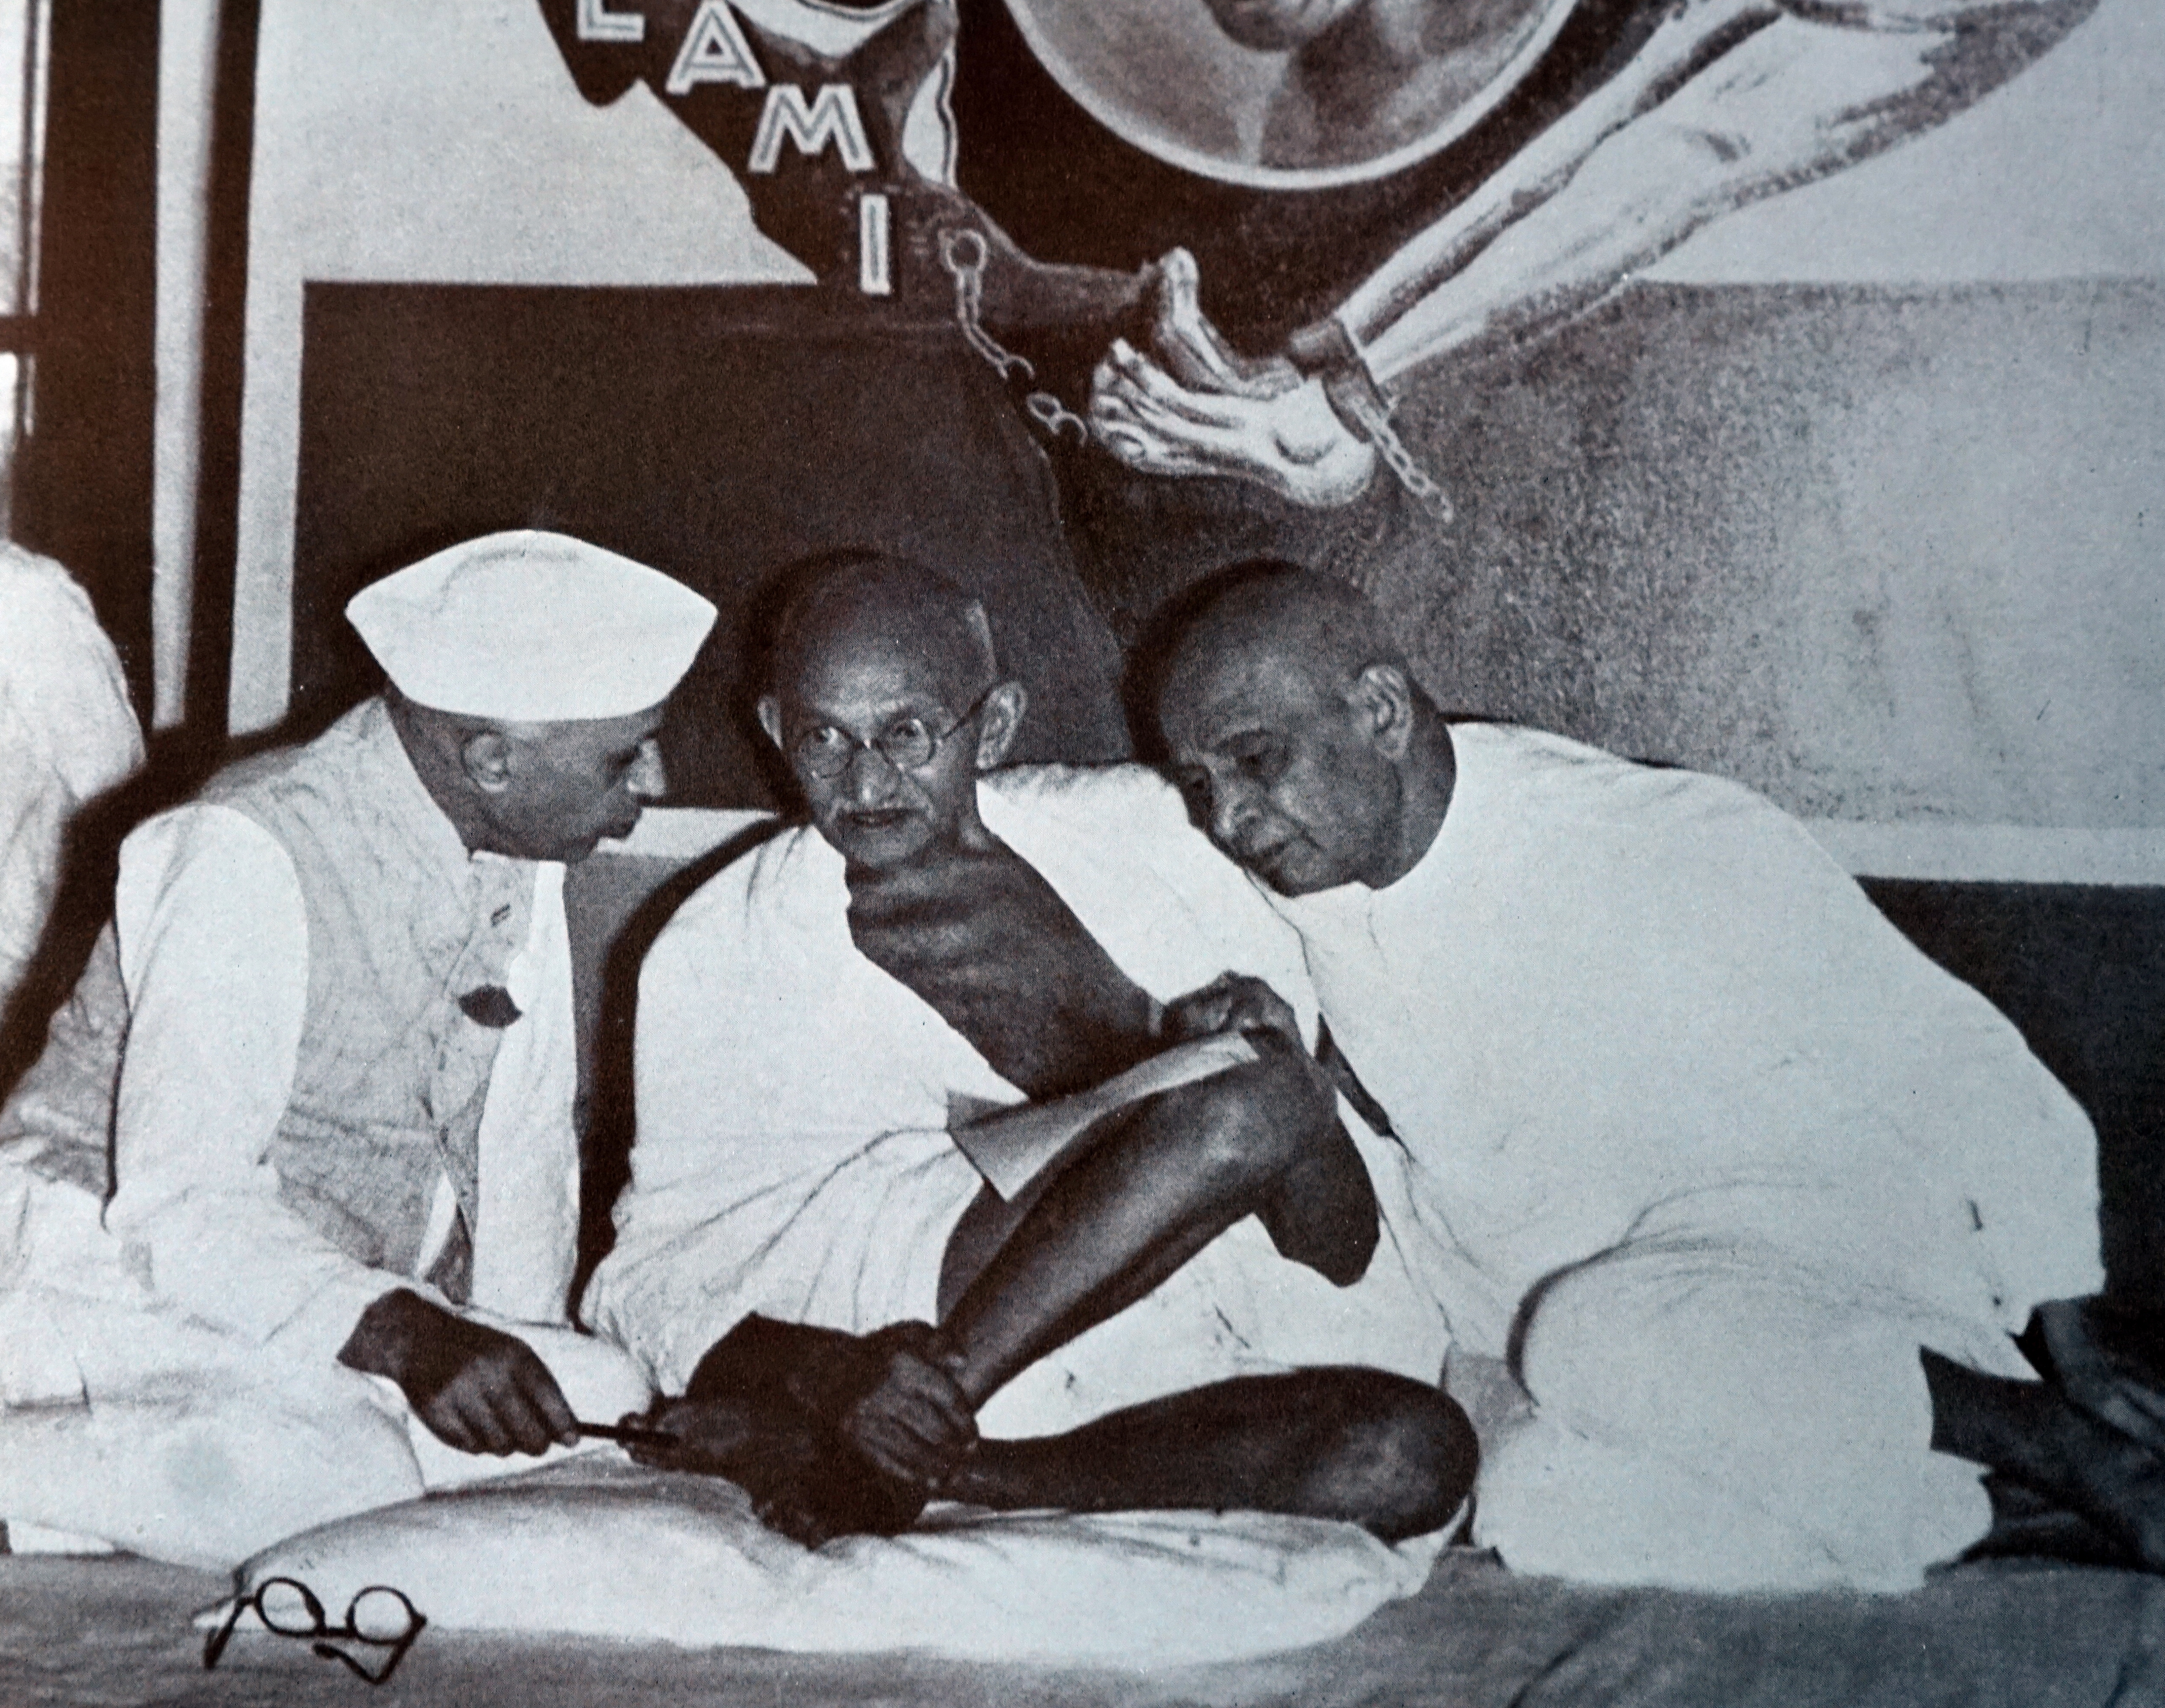 Mahatma Gandhi with Sardar Patel and Jawaharlal Nehru. 1947. Gandhi was the preeminent leader of the Indian independence movement in British-ruled India. Sardar Vallabhbhai Patel was an Indian statesman, a leader of the Indian National Congress and a founding father of the Republic of India. Universal History Archive-UIG/Getty Images.